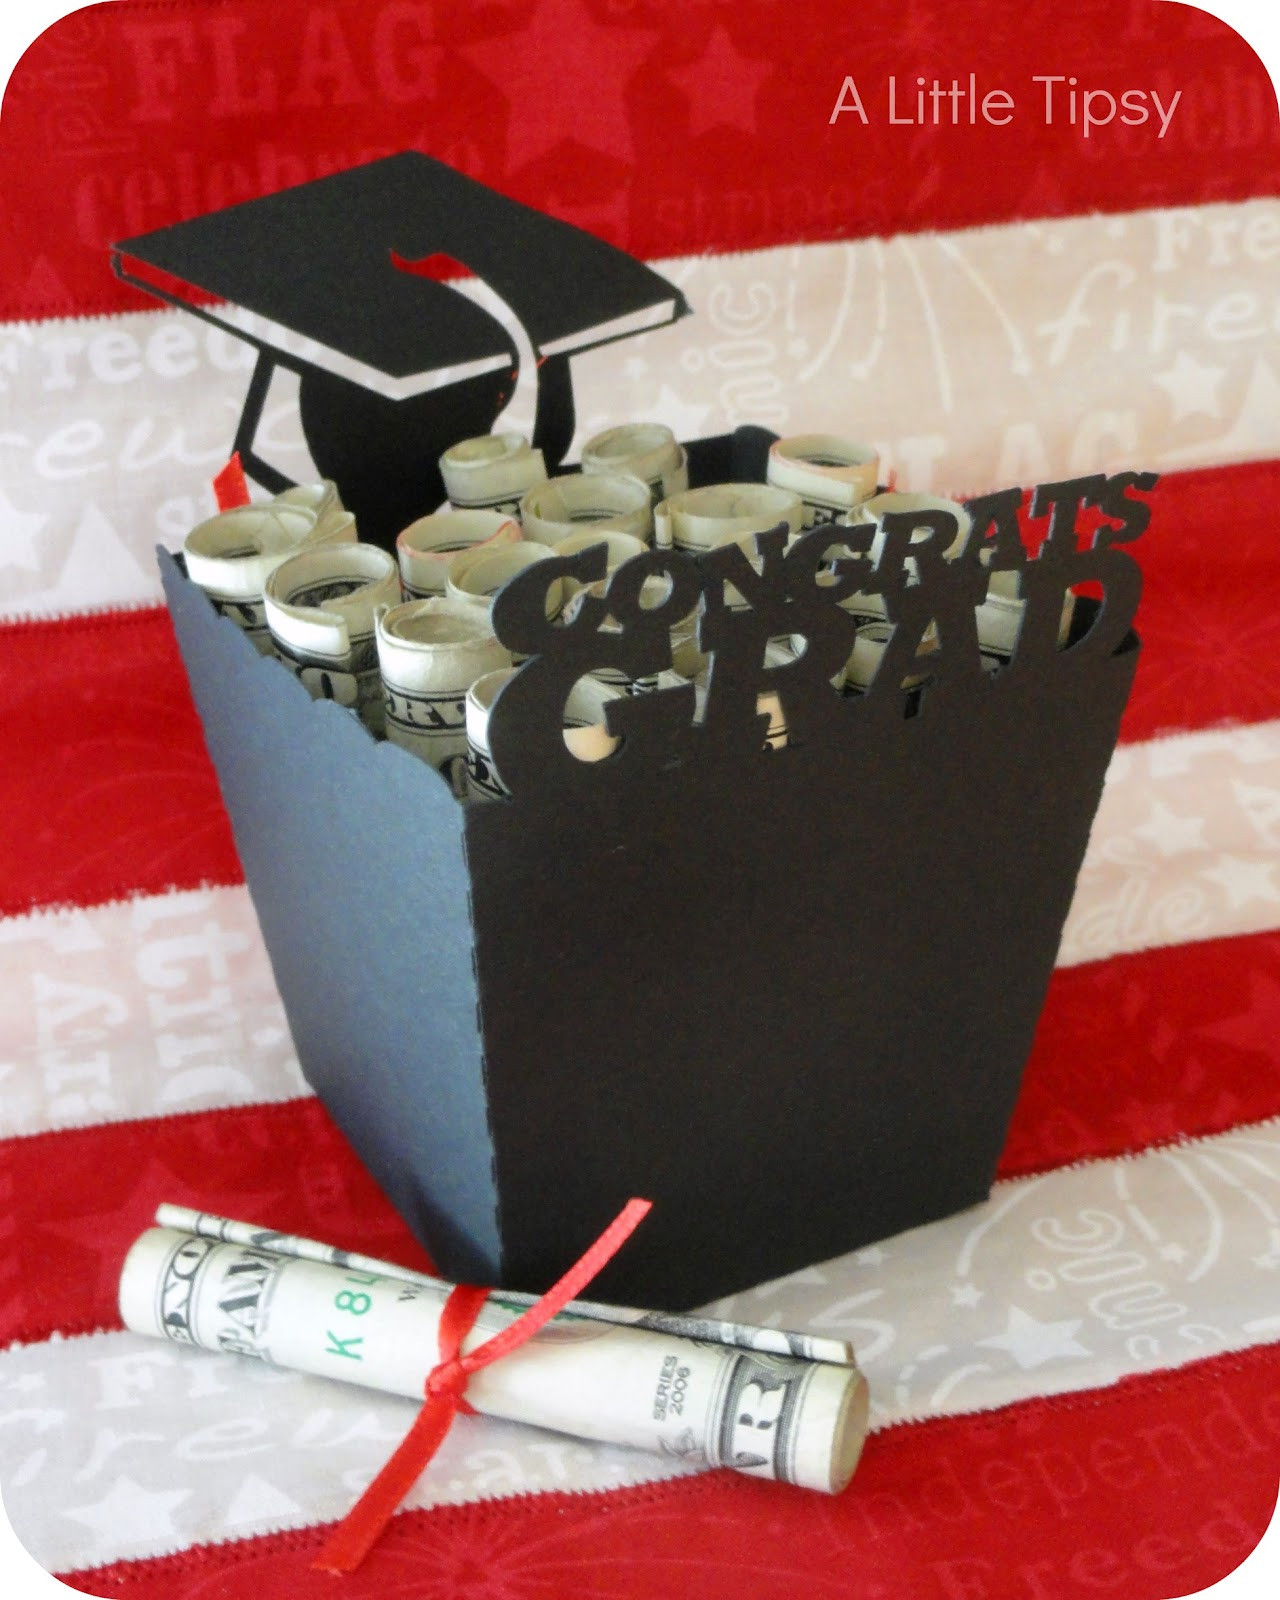 High School Graduation Gift Ideas For Her  Last Minute Graduation Gift A Little Tipsy